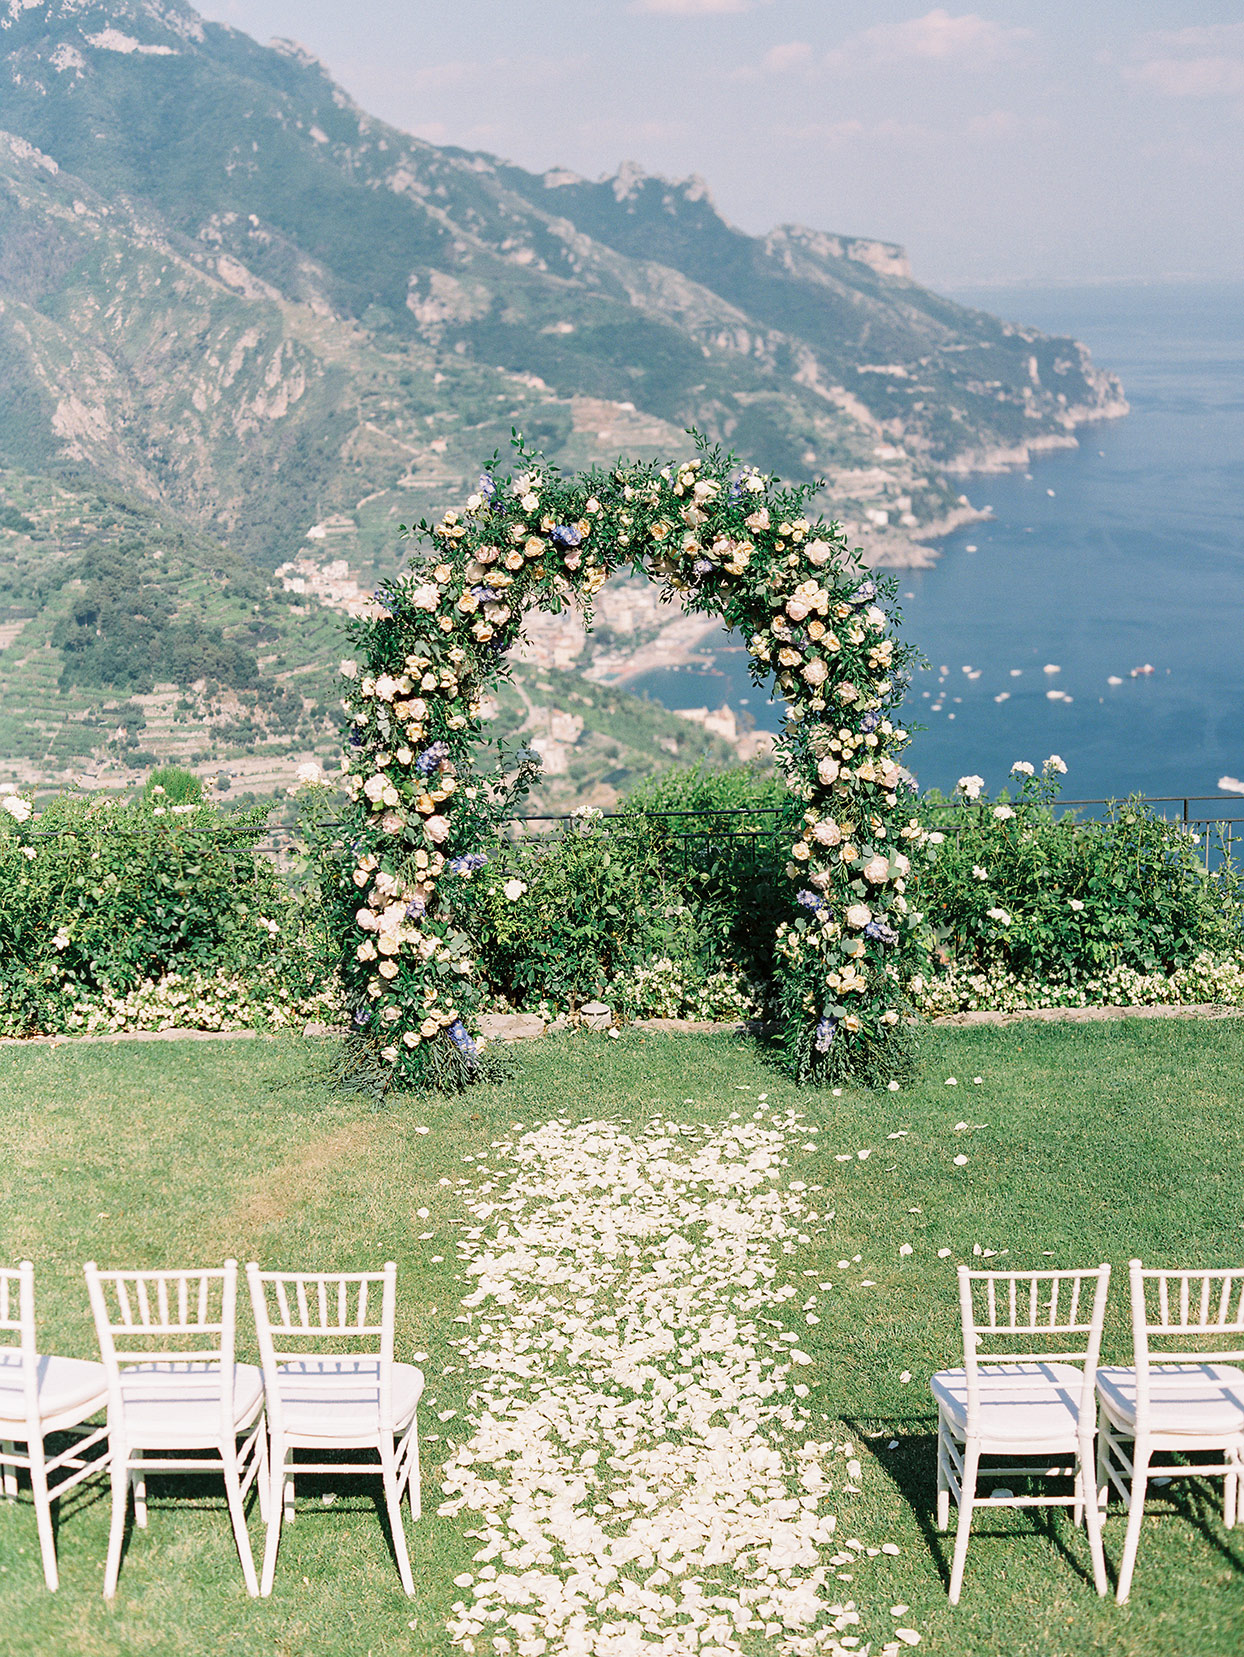 jacqueline david wedding ceremony space overlooking mountains